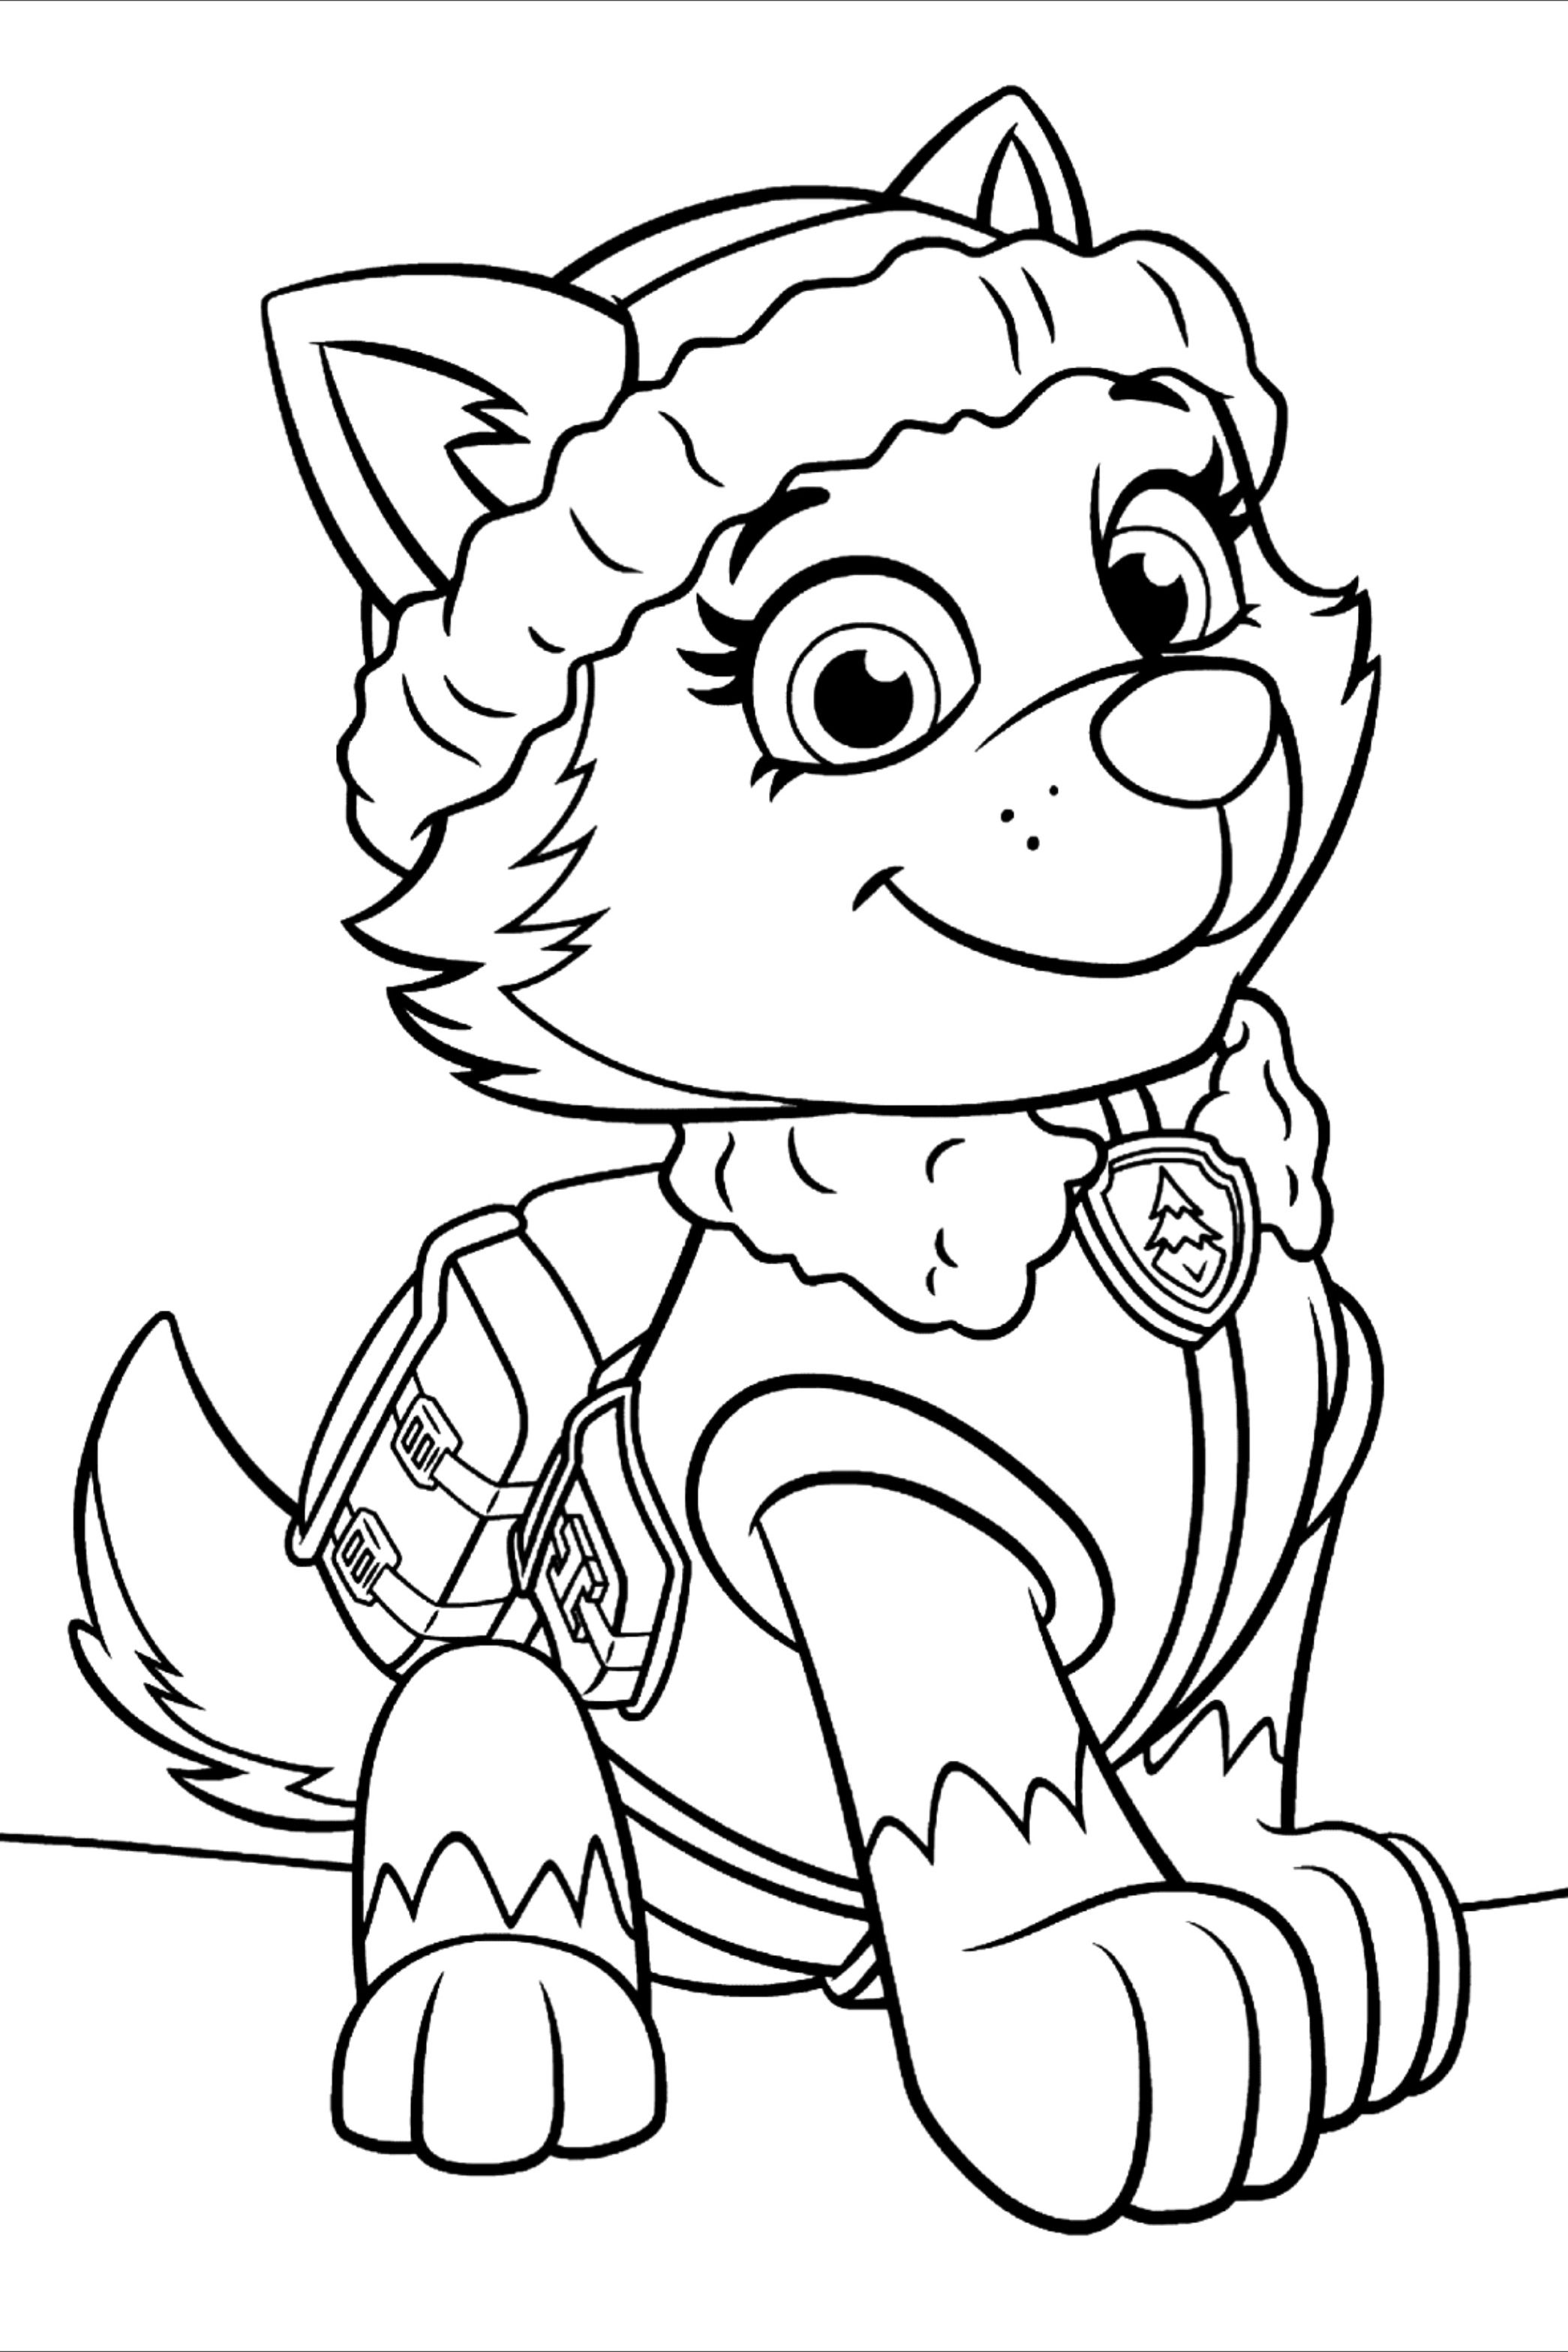 50 Paw Patrol Coloring Pages For Kids Paw Patrol Coloring Pages Paw Patrol Coloring Everest Paw Patrol